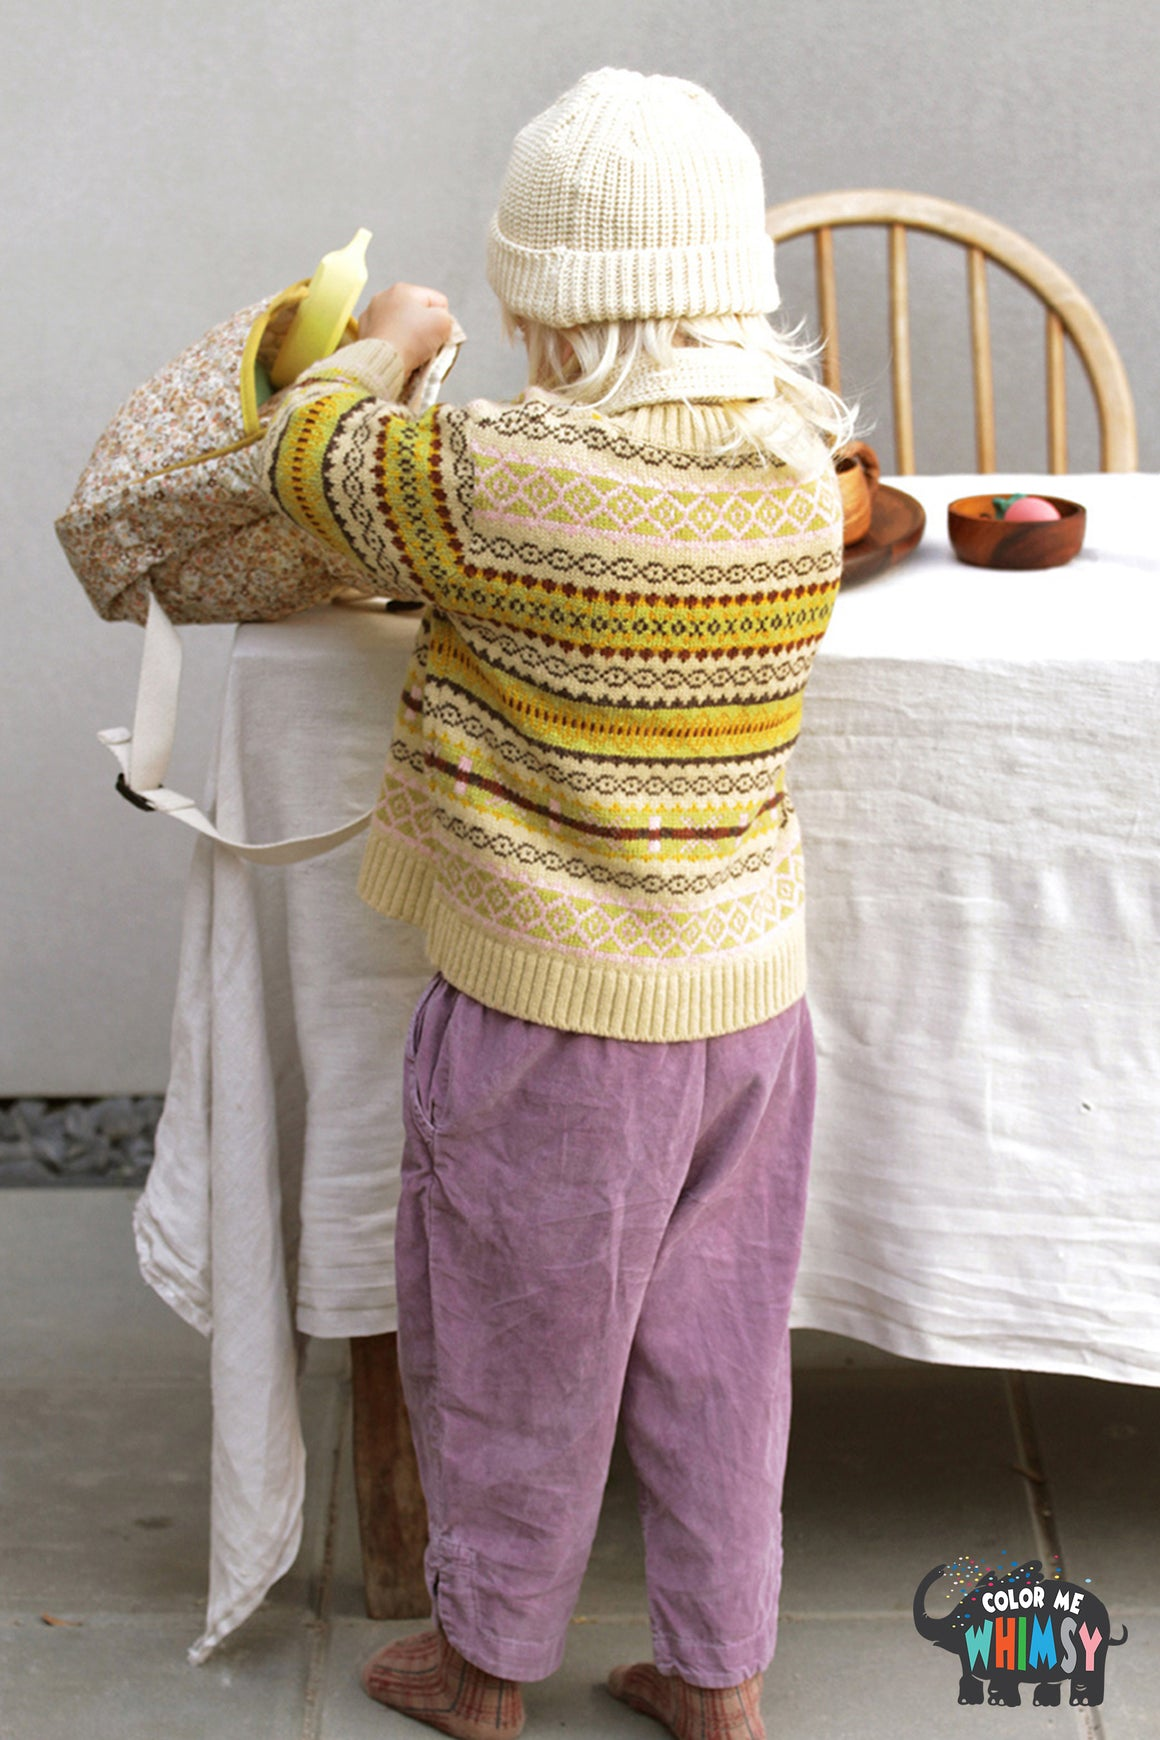 BN Colorful Knit Pullover at Color Me WHIMSY Hip Kid's Fashion Ethically Made in South Korea